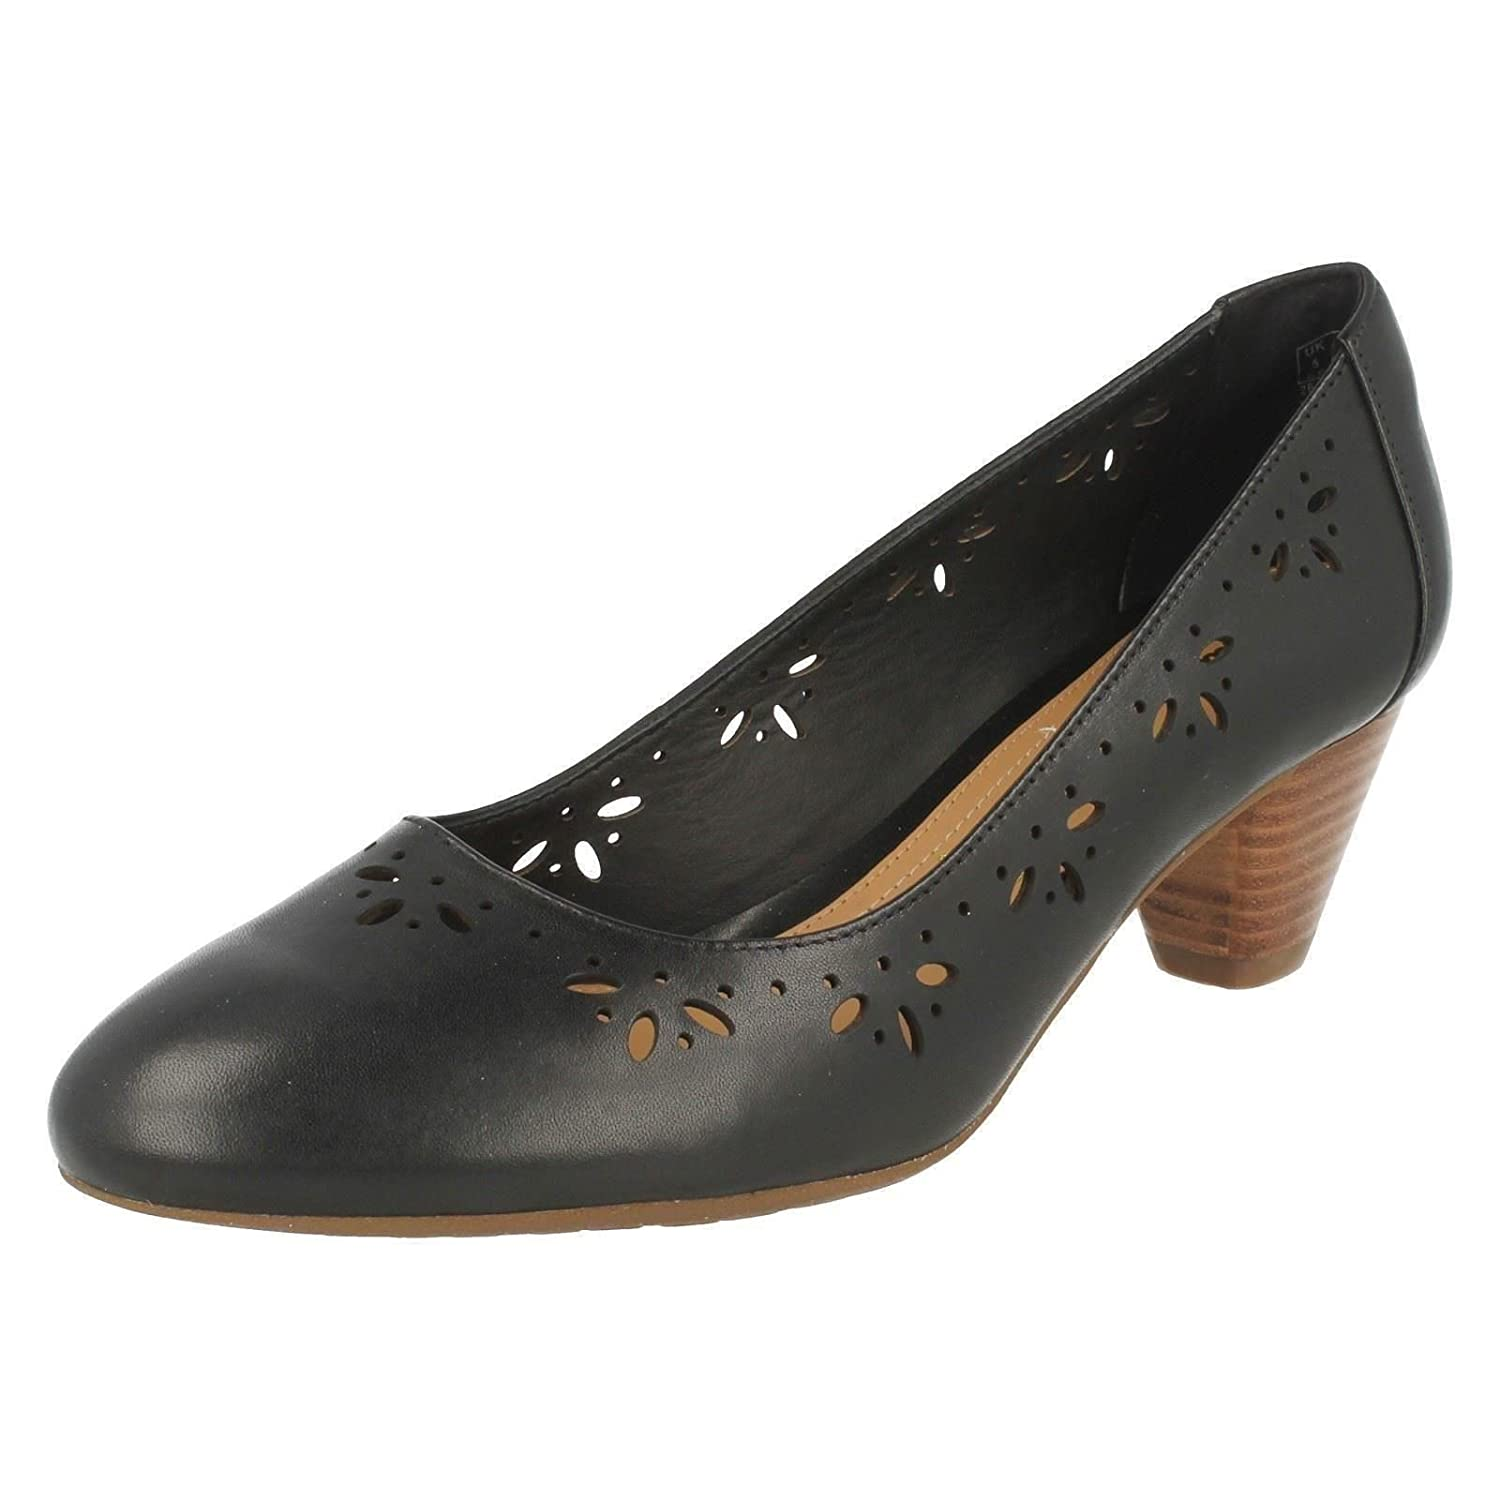 Clarks Denny Harbour, Women's Closed Toe Pumps: Amazon.co.uk